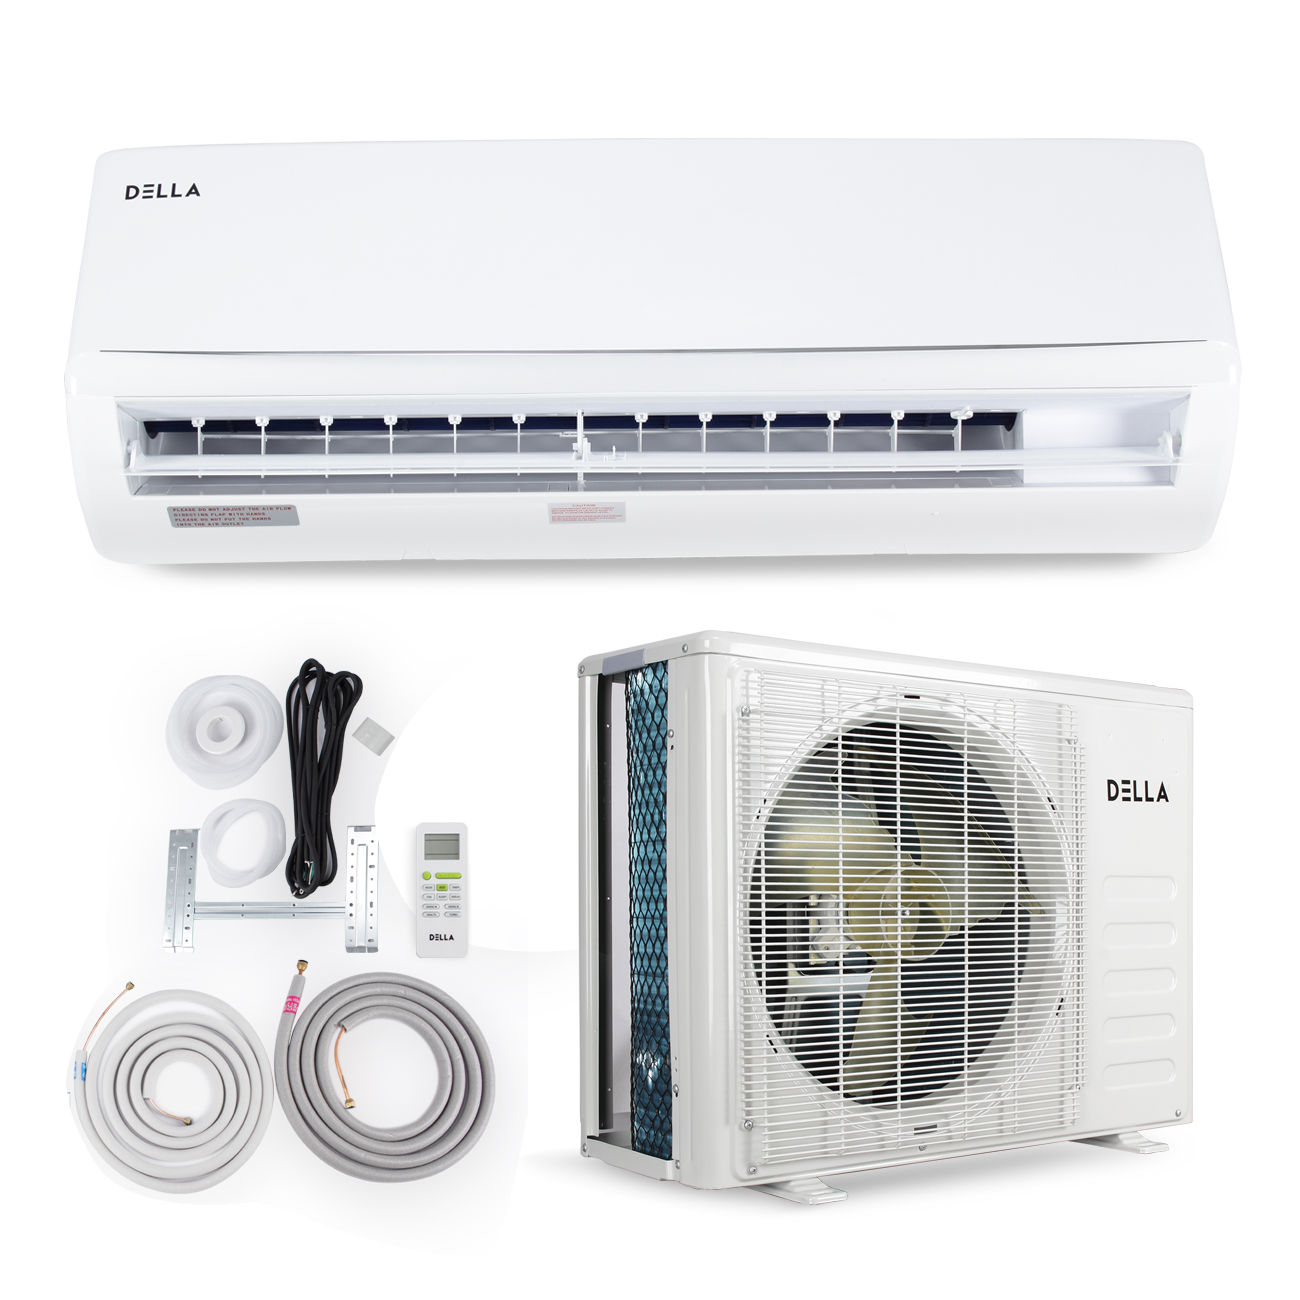 DELLA 18,000 BTU 230V- 21.5 SEER Mini Split Heat Pump Inverter Air Conditioner AHRI Certificate 16' Installation Kit